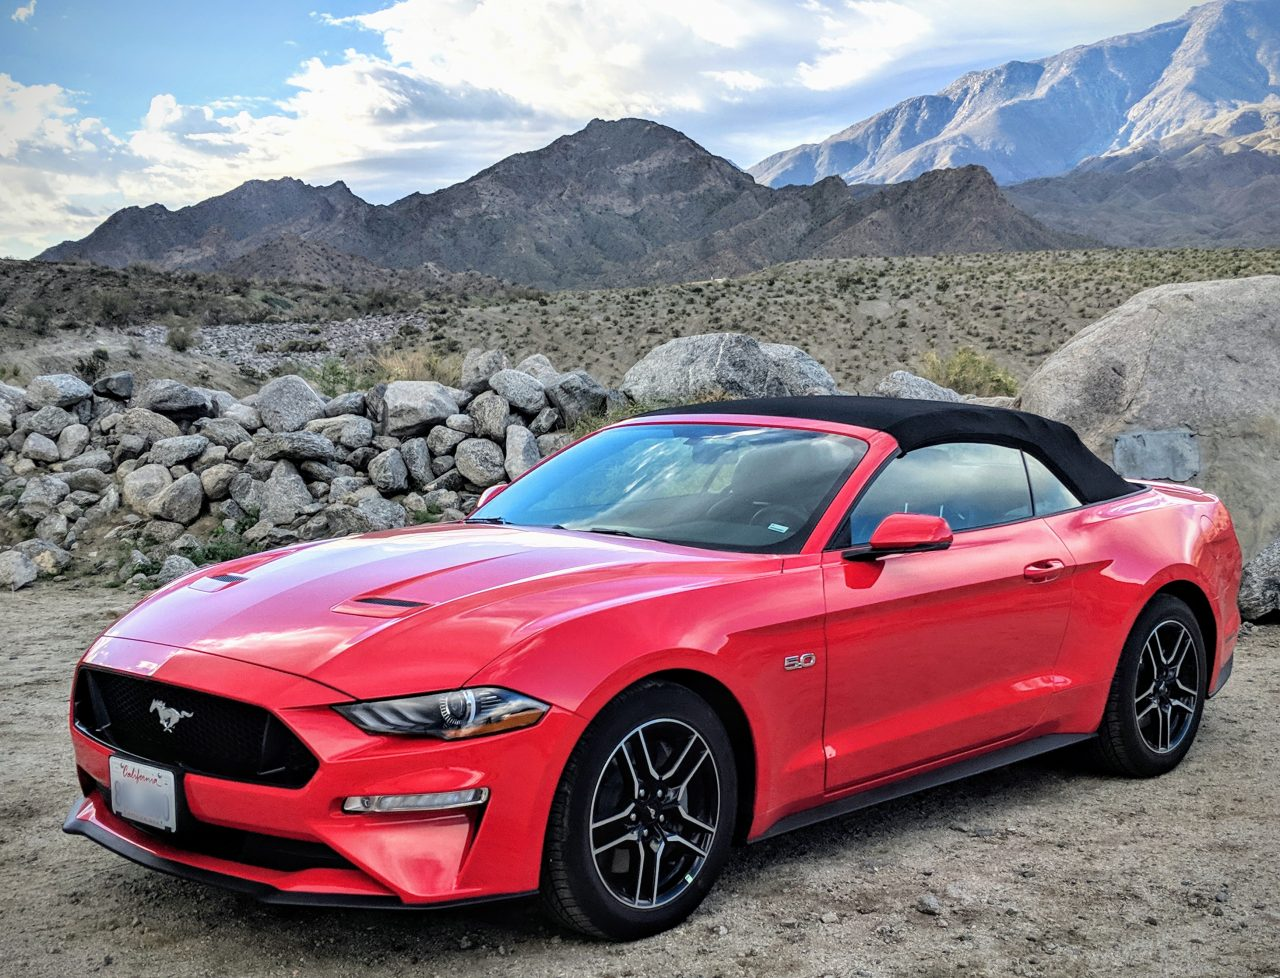 2019 Mustang GT convertible red